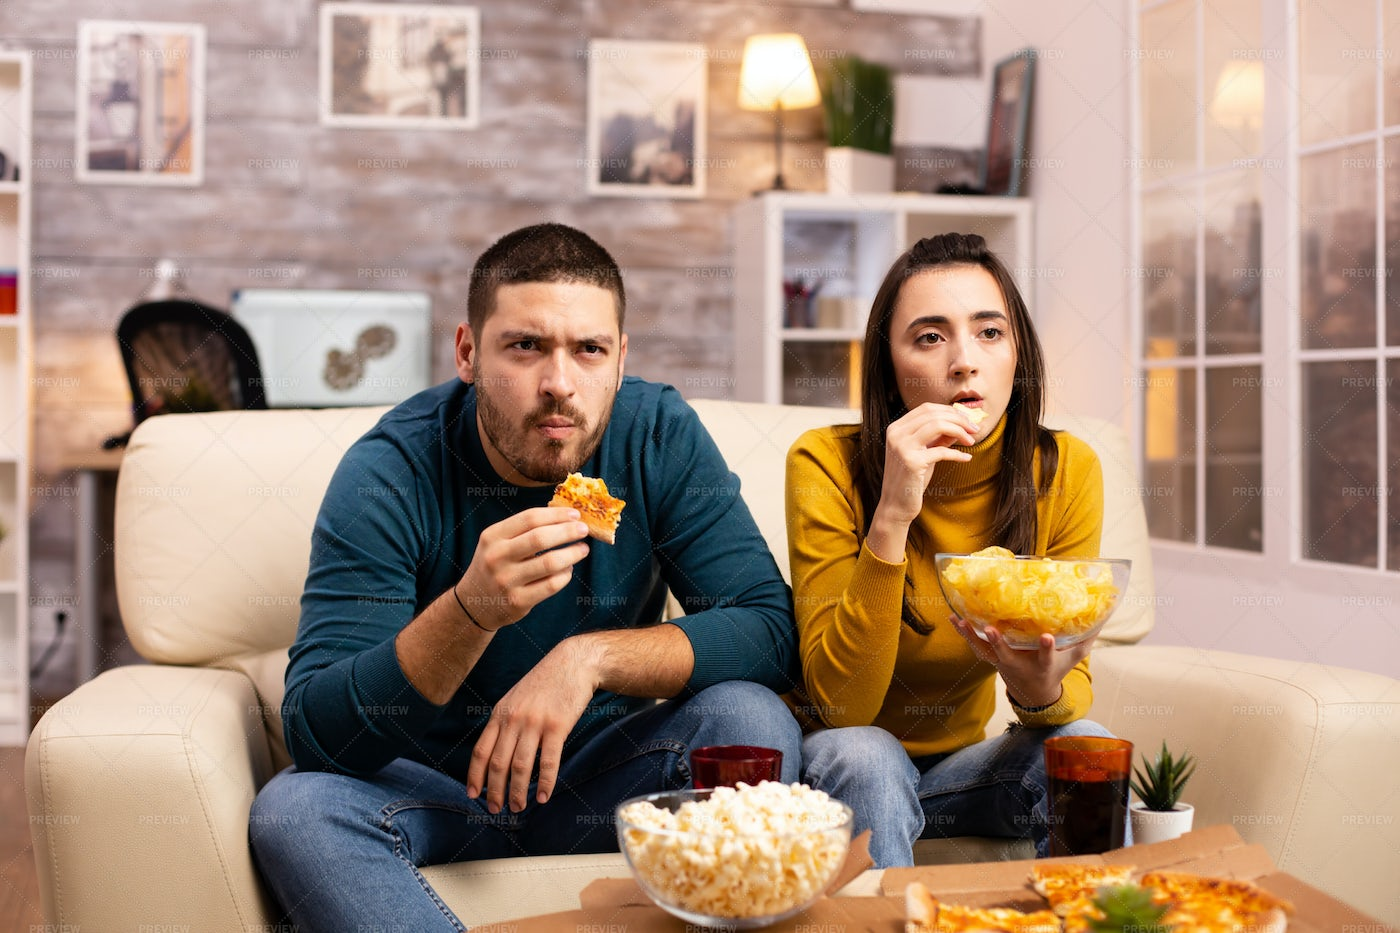 Eating Pizza And Watching Tv: Stock Photos